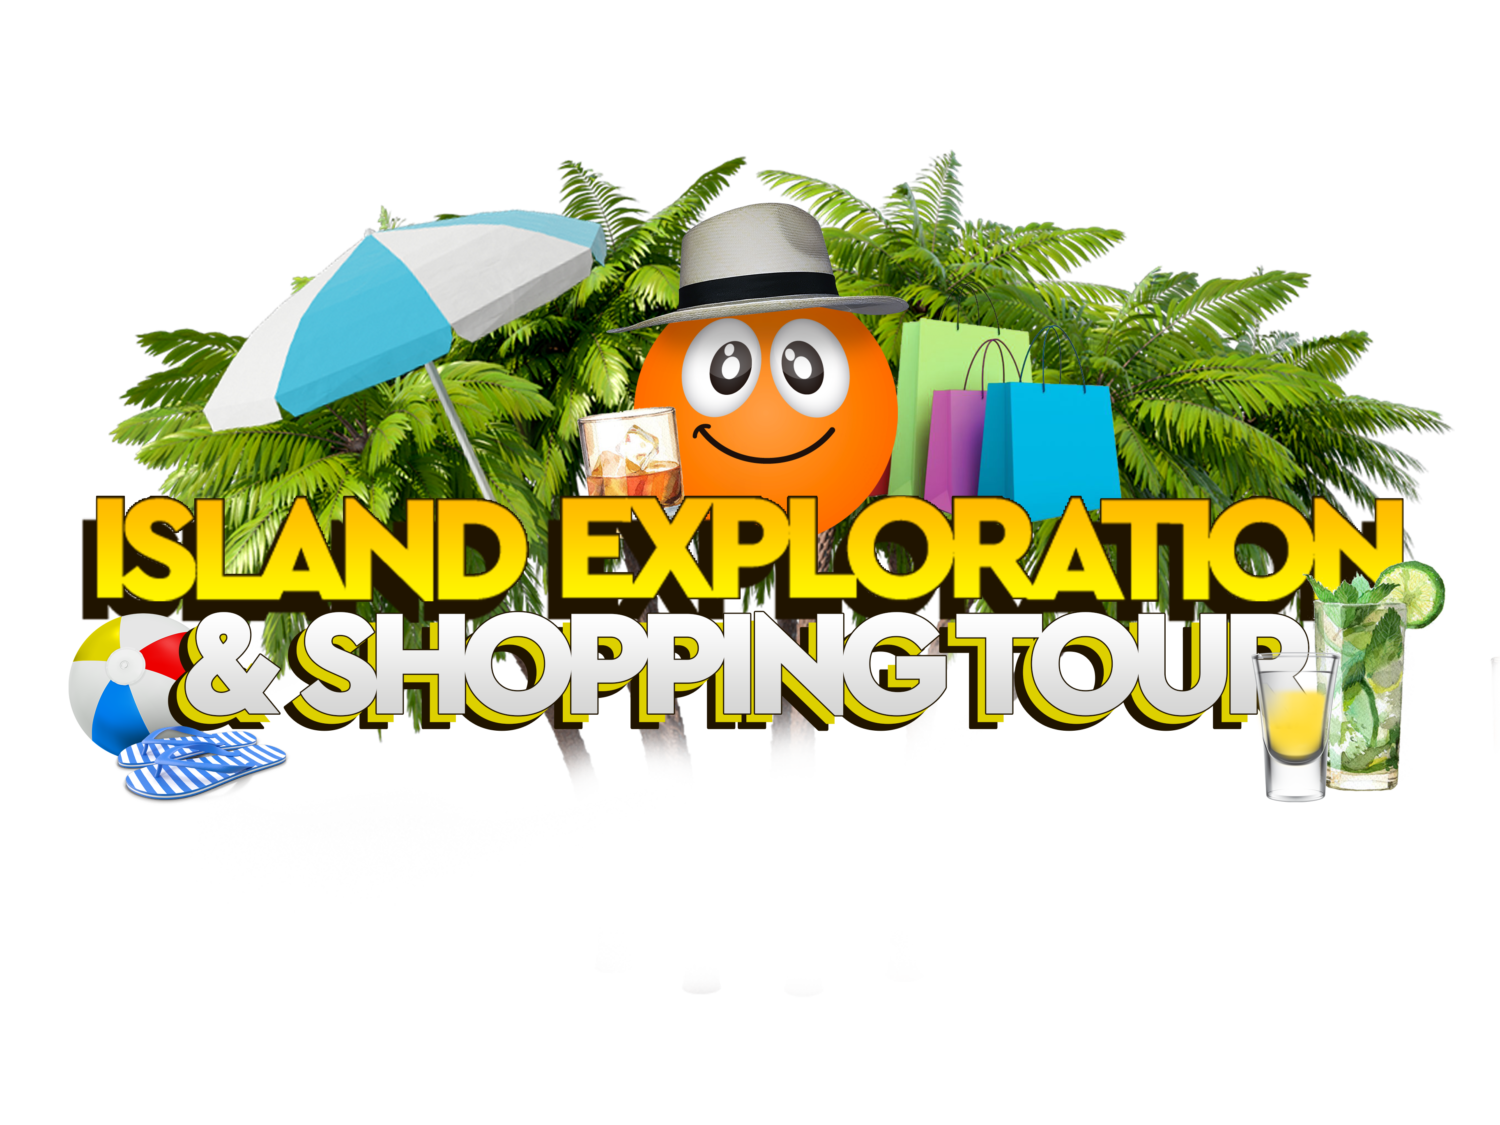 ISLAND EXPLORATION AND SHOPPING TOUR